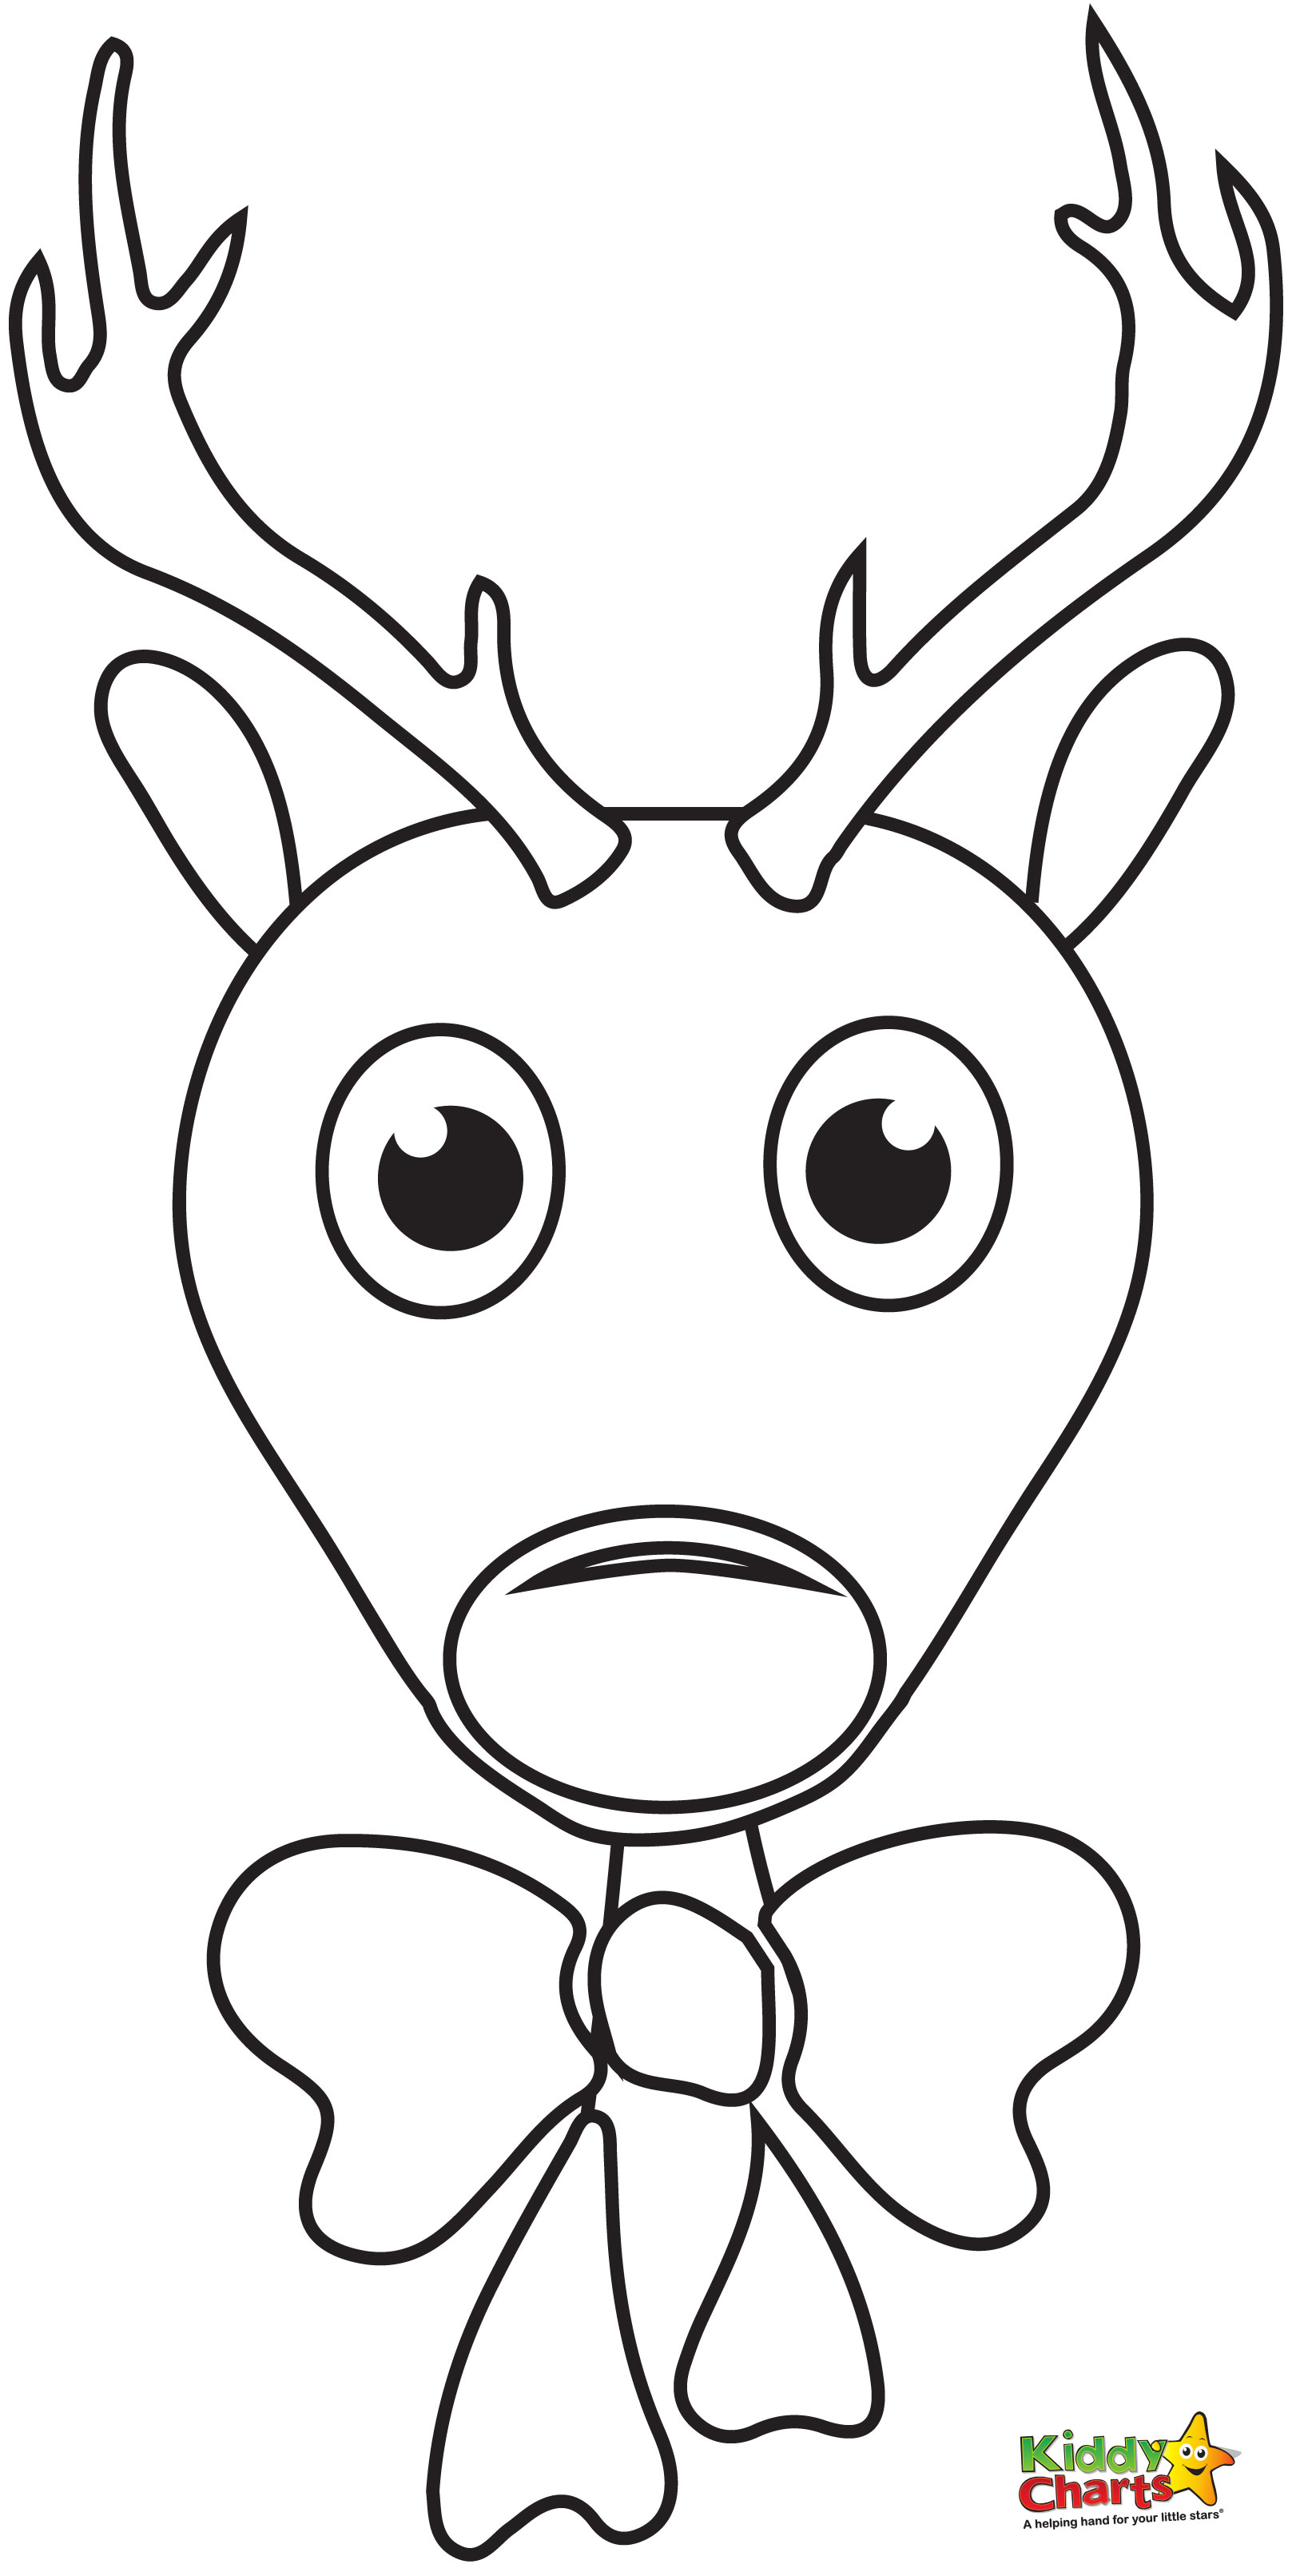 Reindeer Face Drawing At Getdrawings